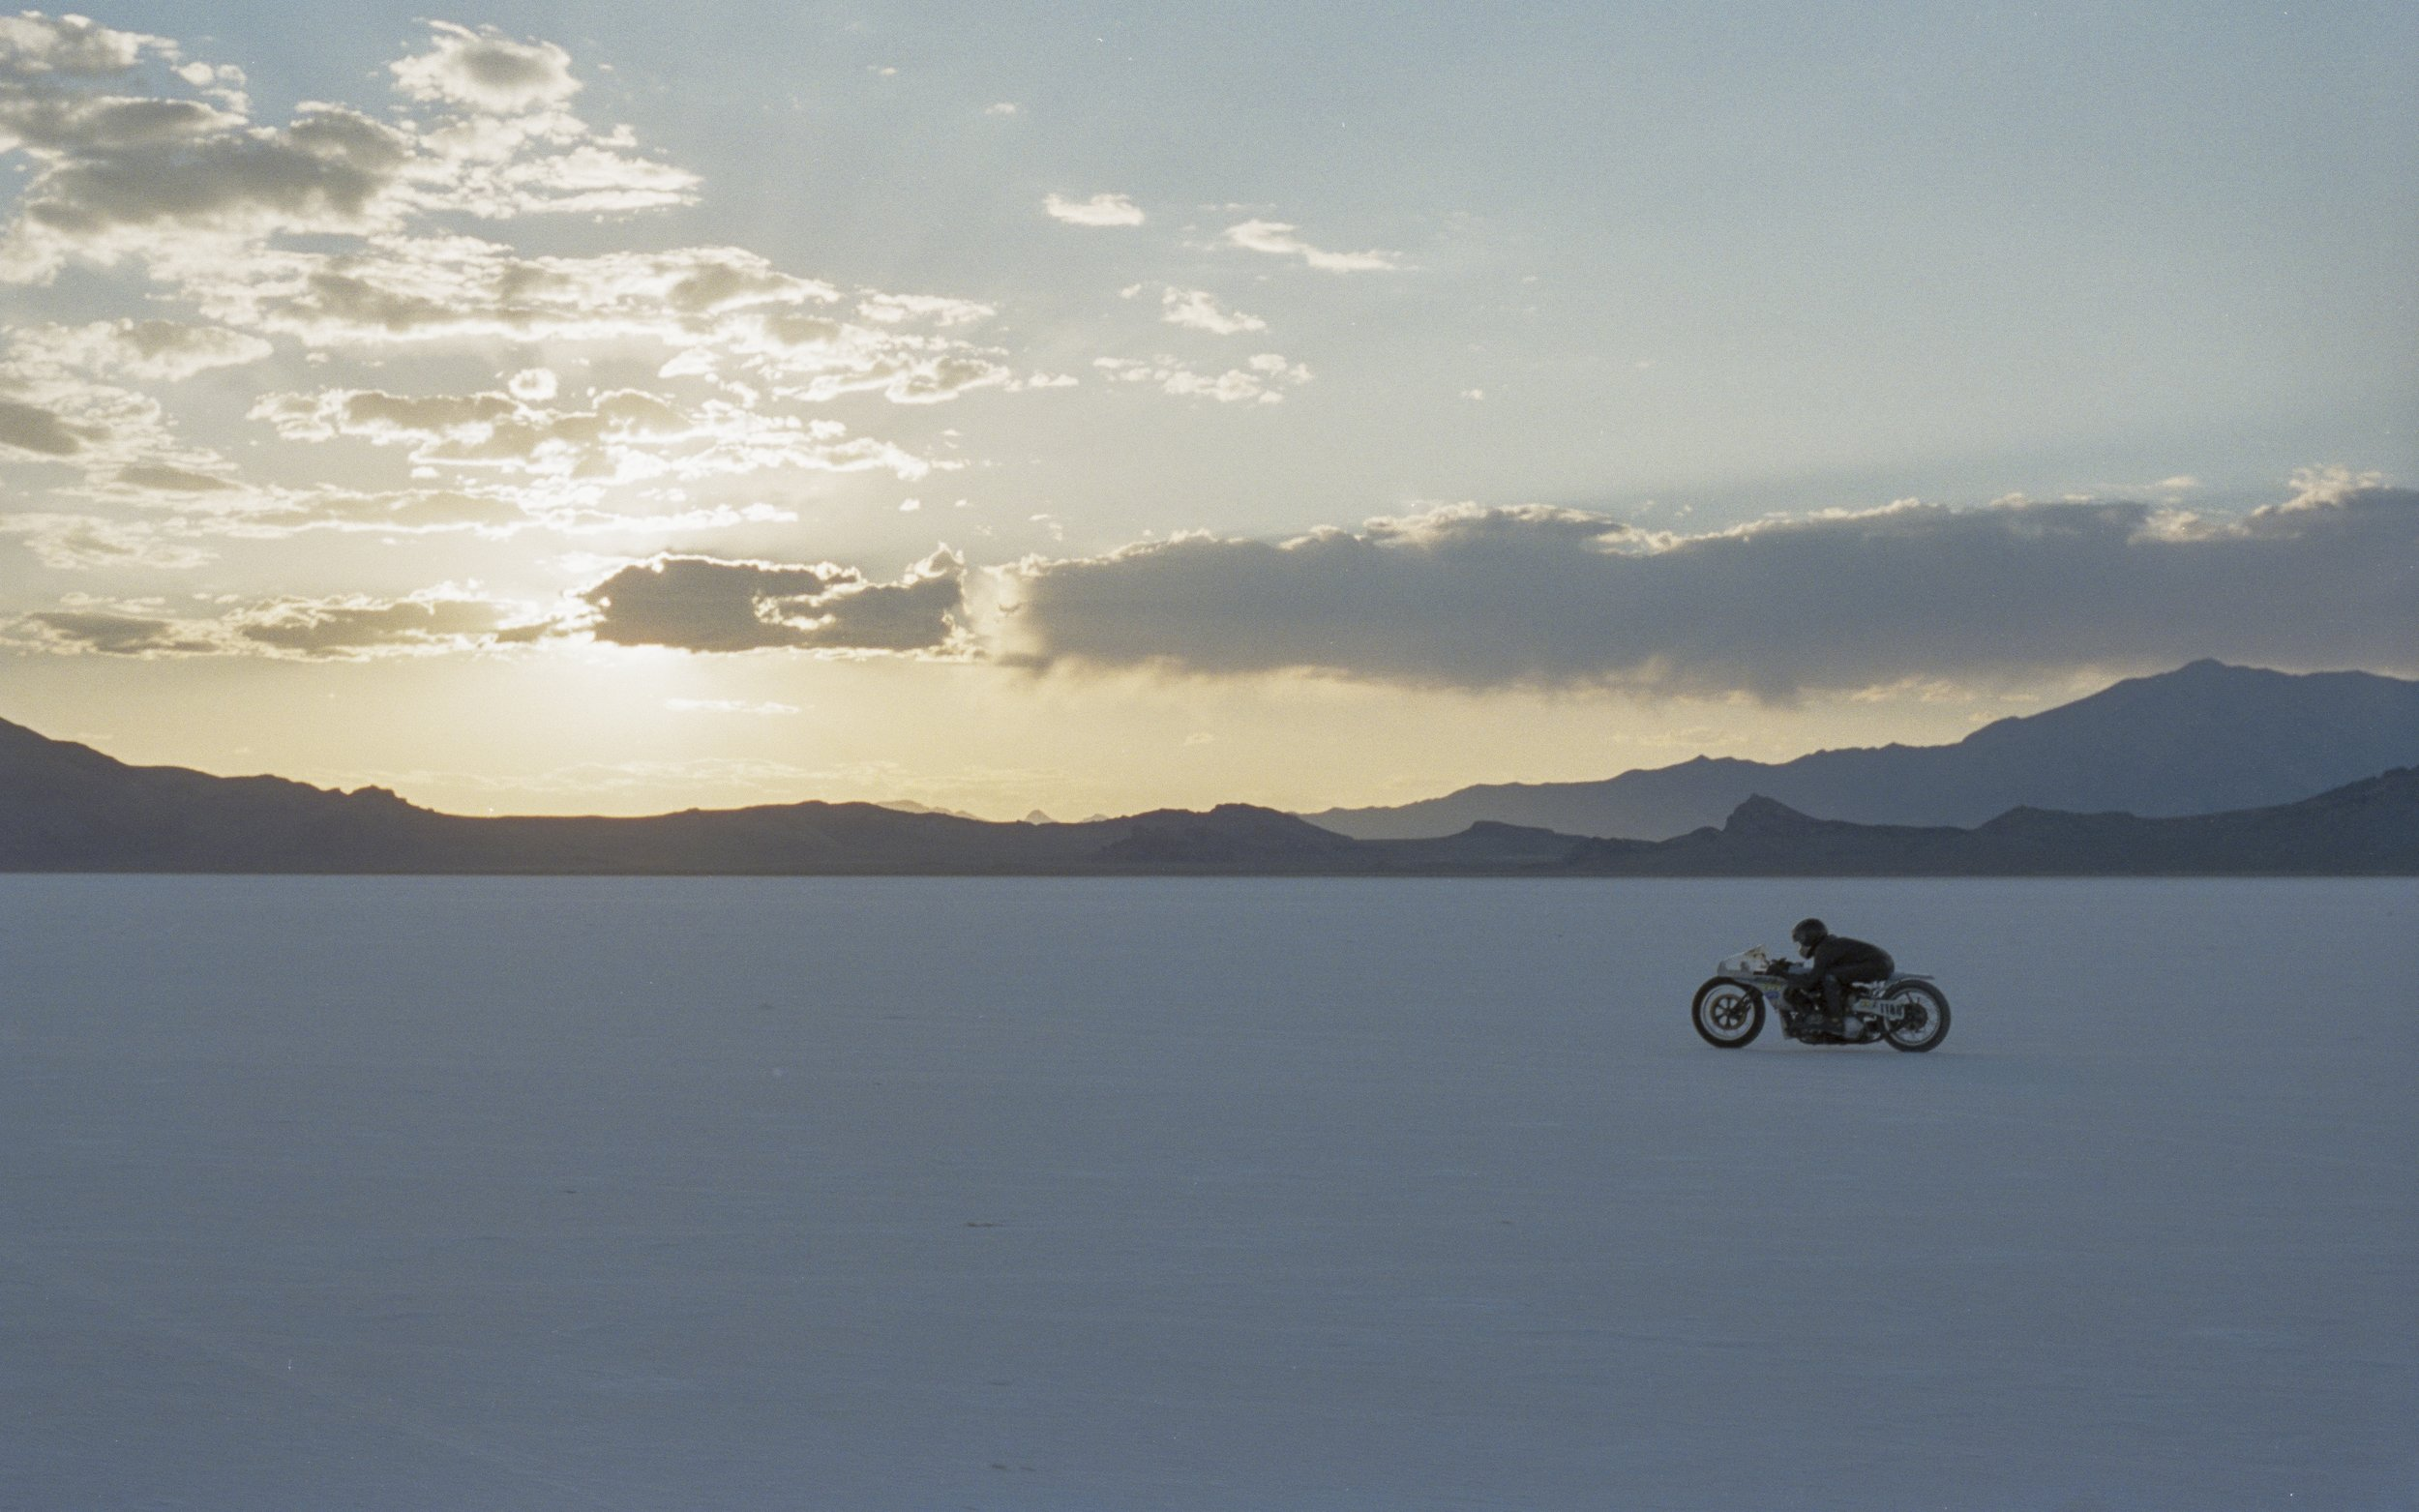 6 - Shinya Kimura performing on his Knuckle Head in Bonneville Salt Flat, Utah _resultat.jpg